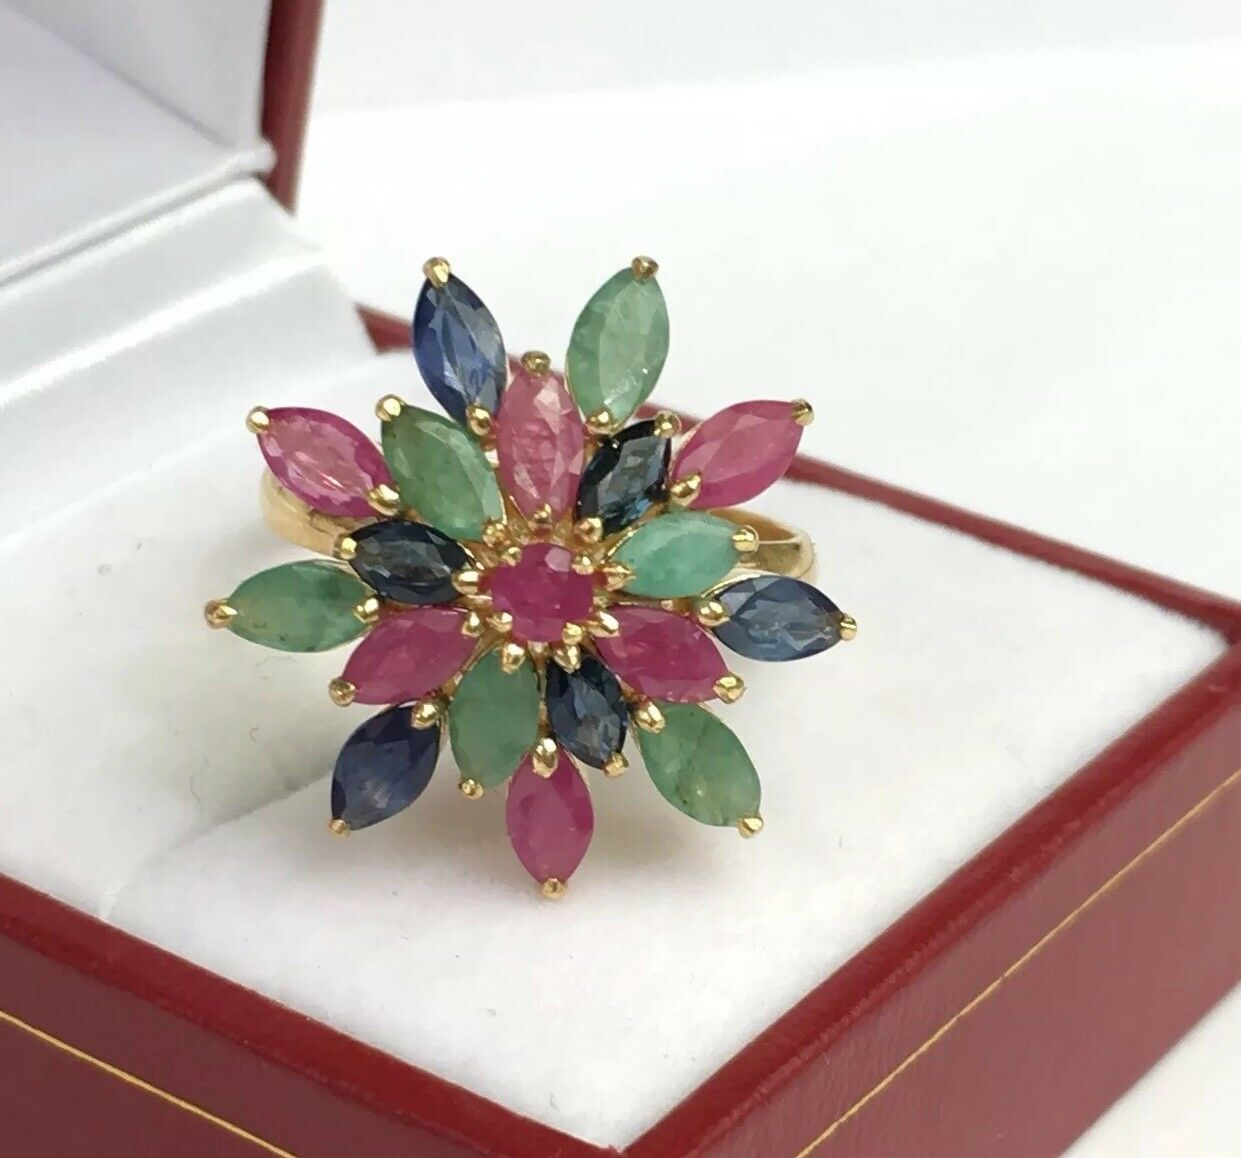 14k Solid gold Yellow gold Cluster Ring Mix Sapphire Emerald Ruby, Sz 8.25